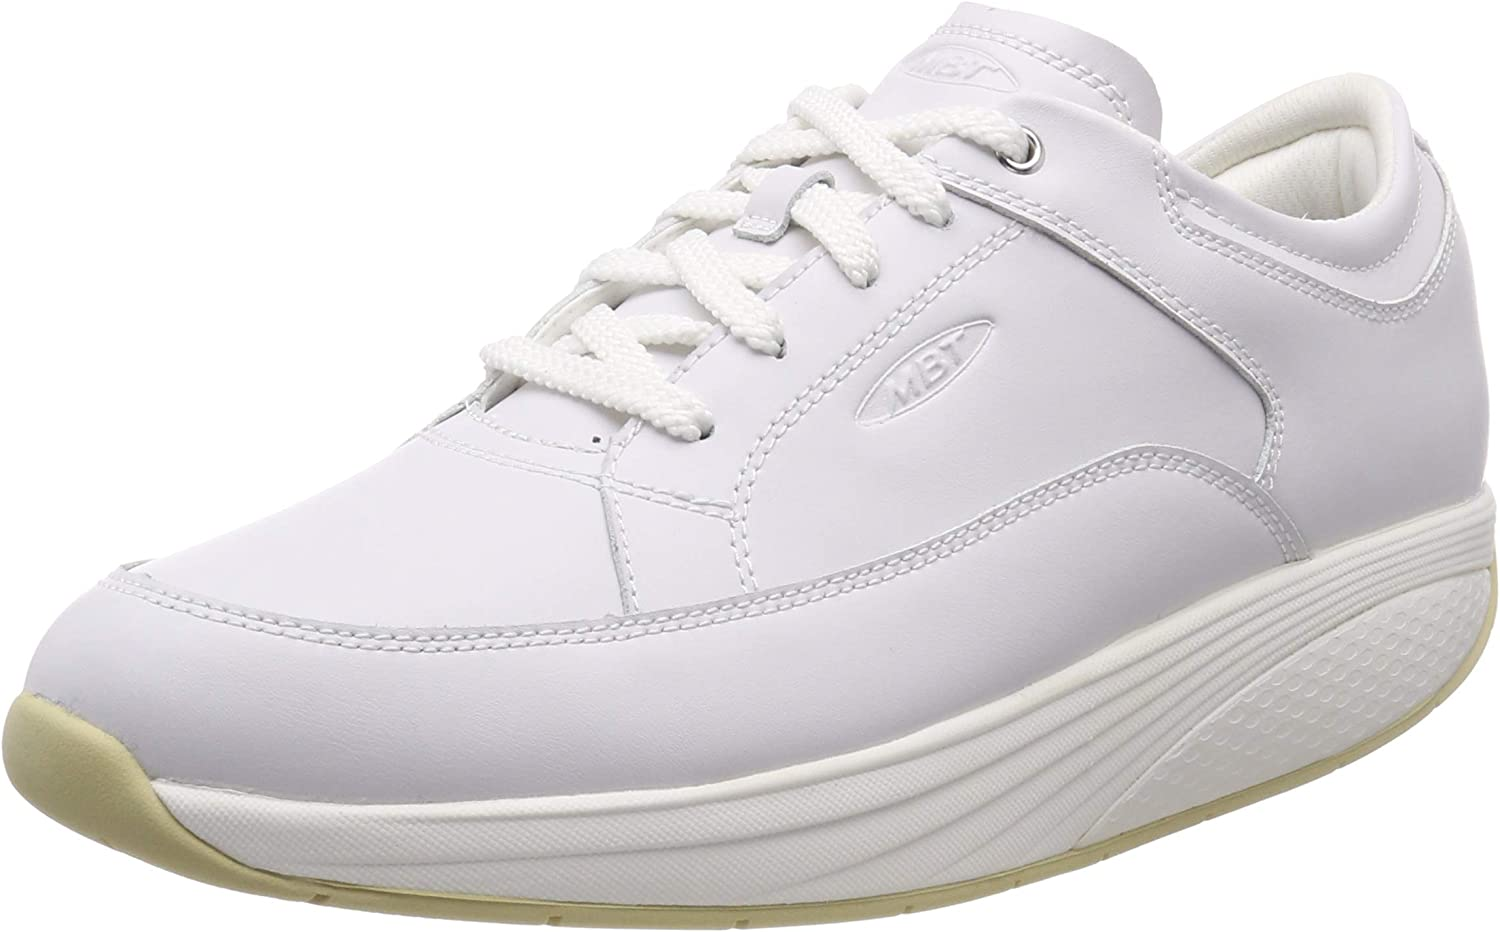 MBT shoes Reem 6 M White, shoes for Men